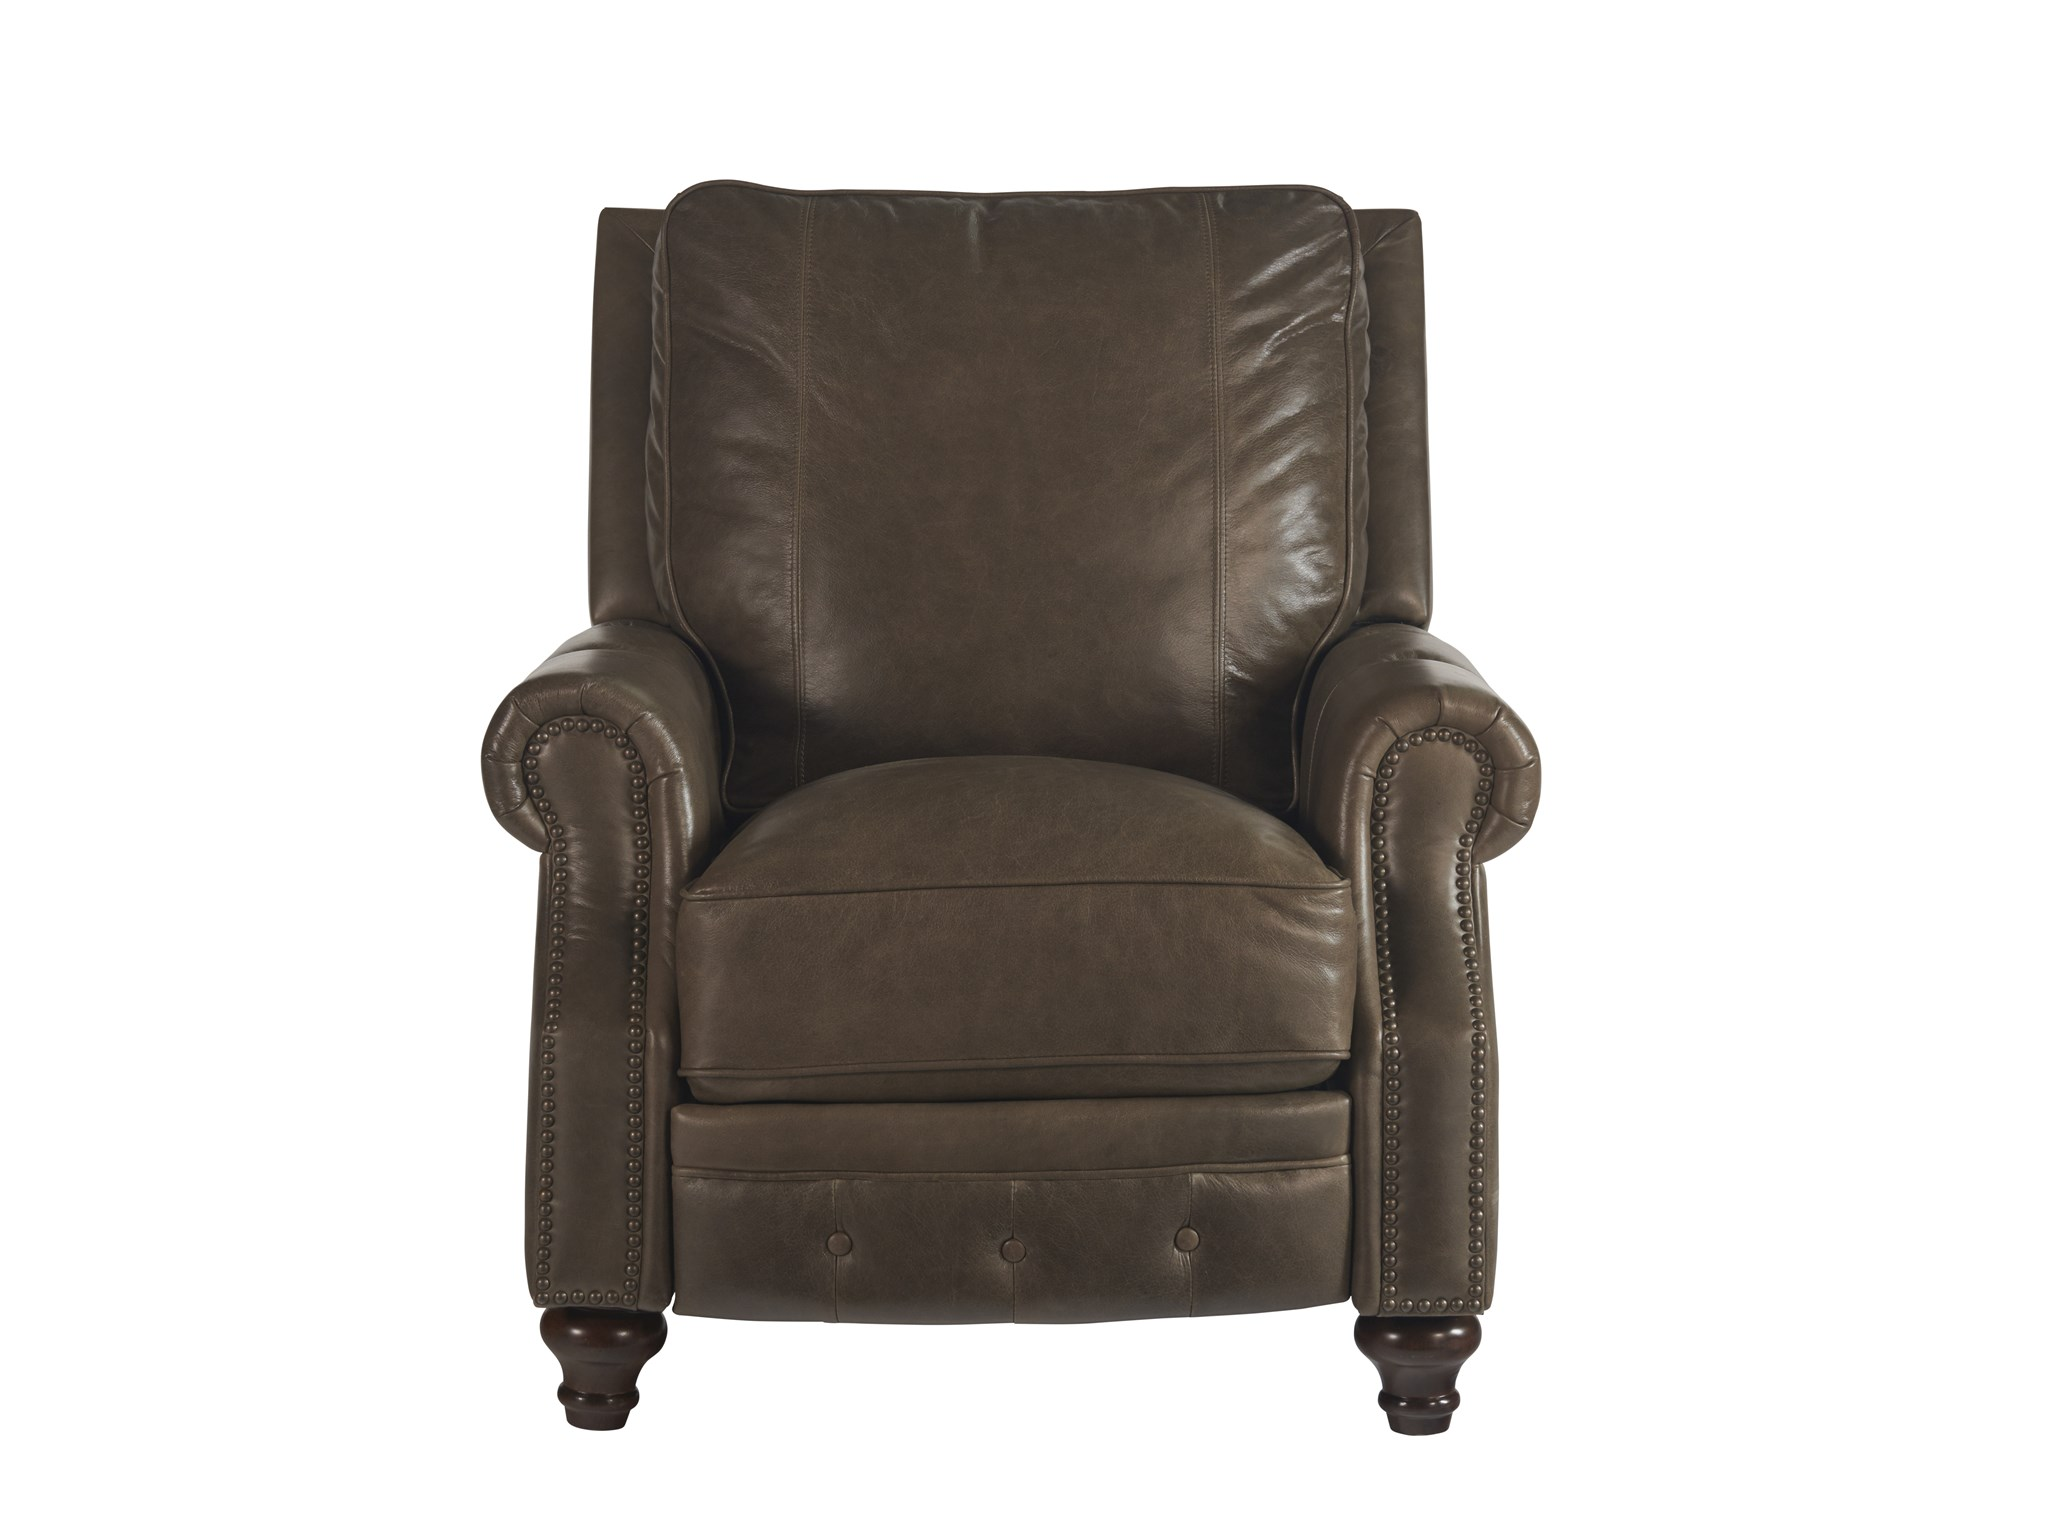 The Harrison Power Recliner